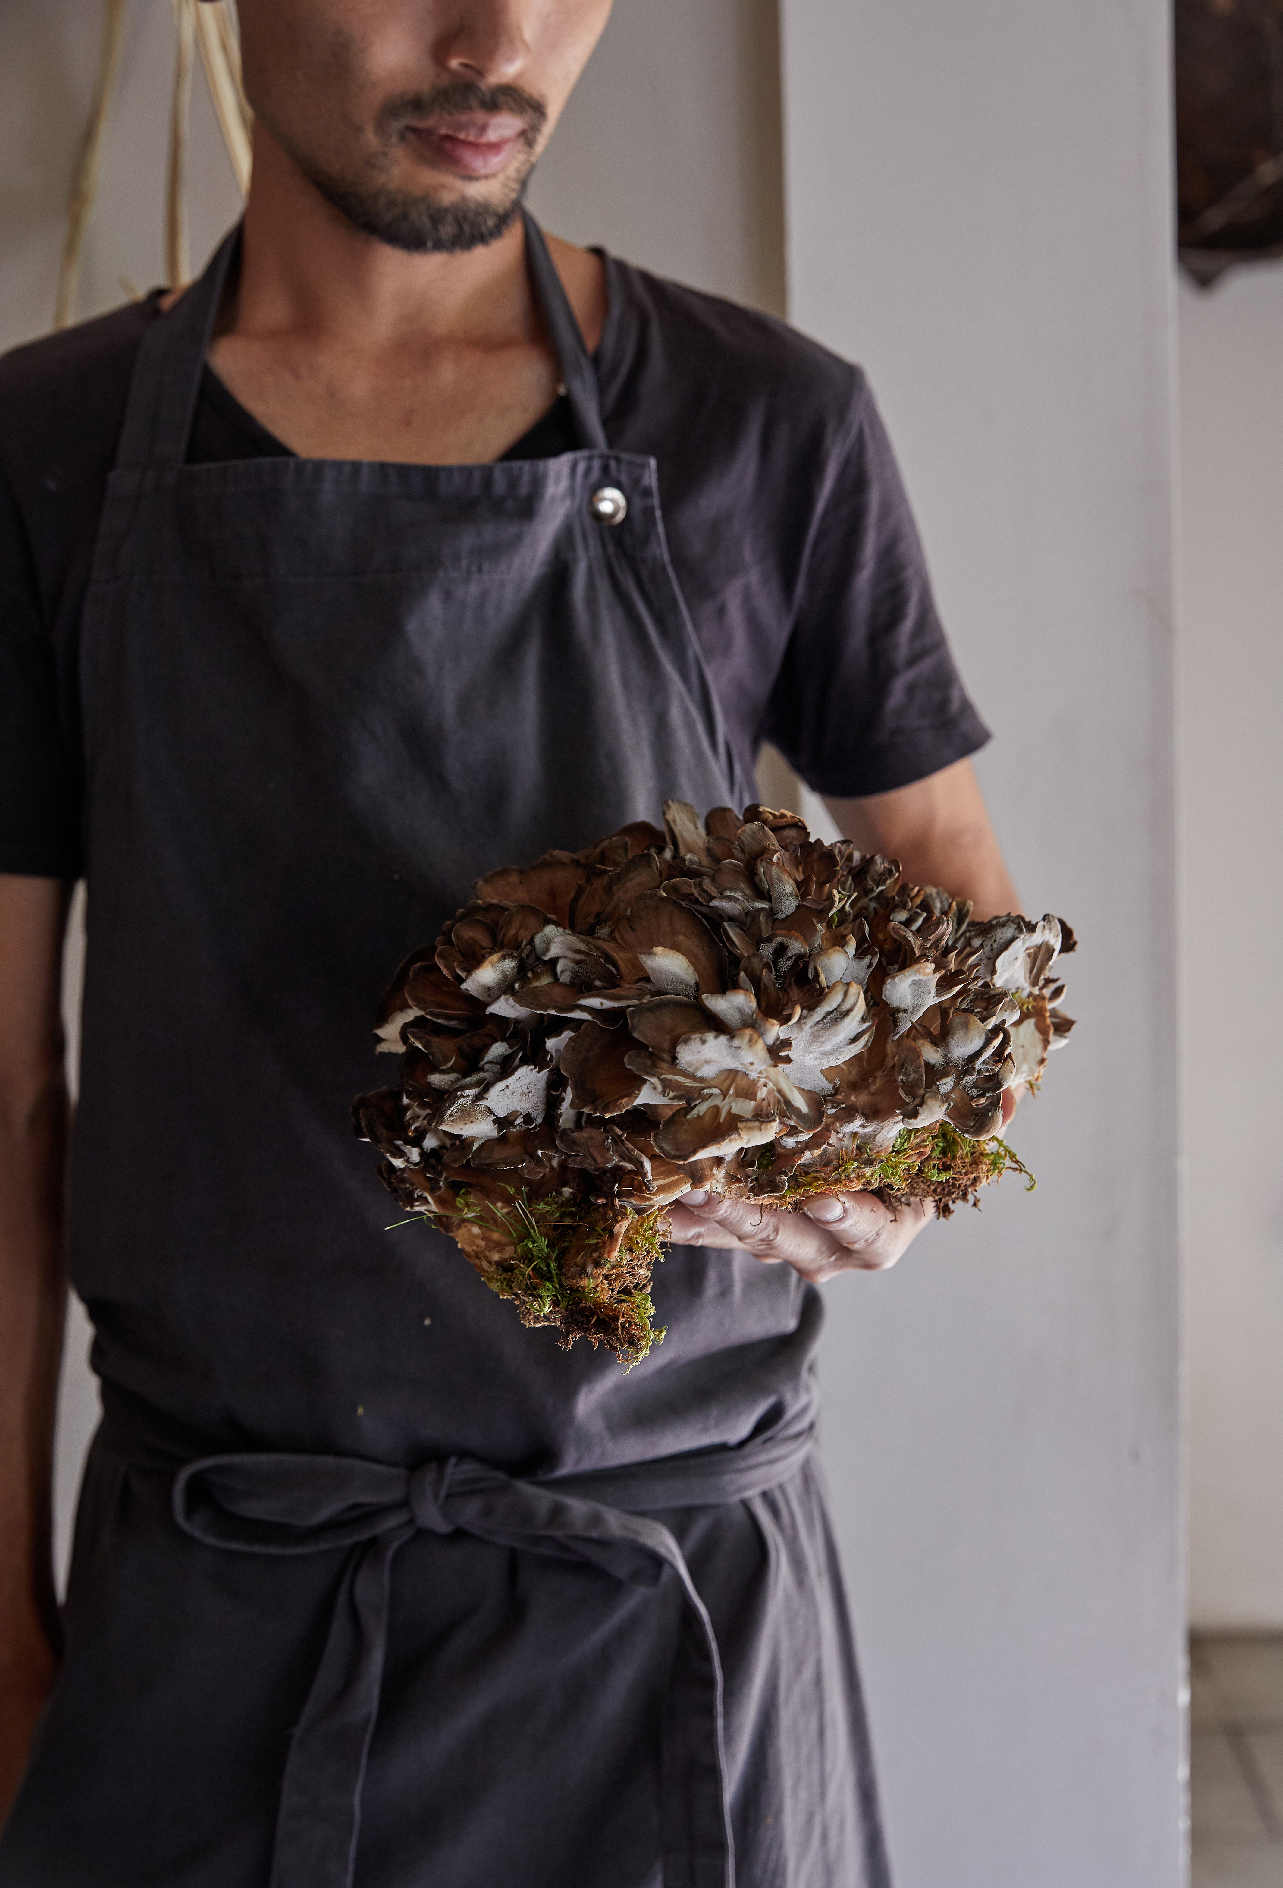 Yoshihiro Imai with a maitake mushroom, from monk. All photographs by Yuka Yanazume